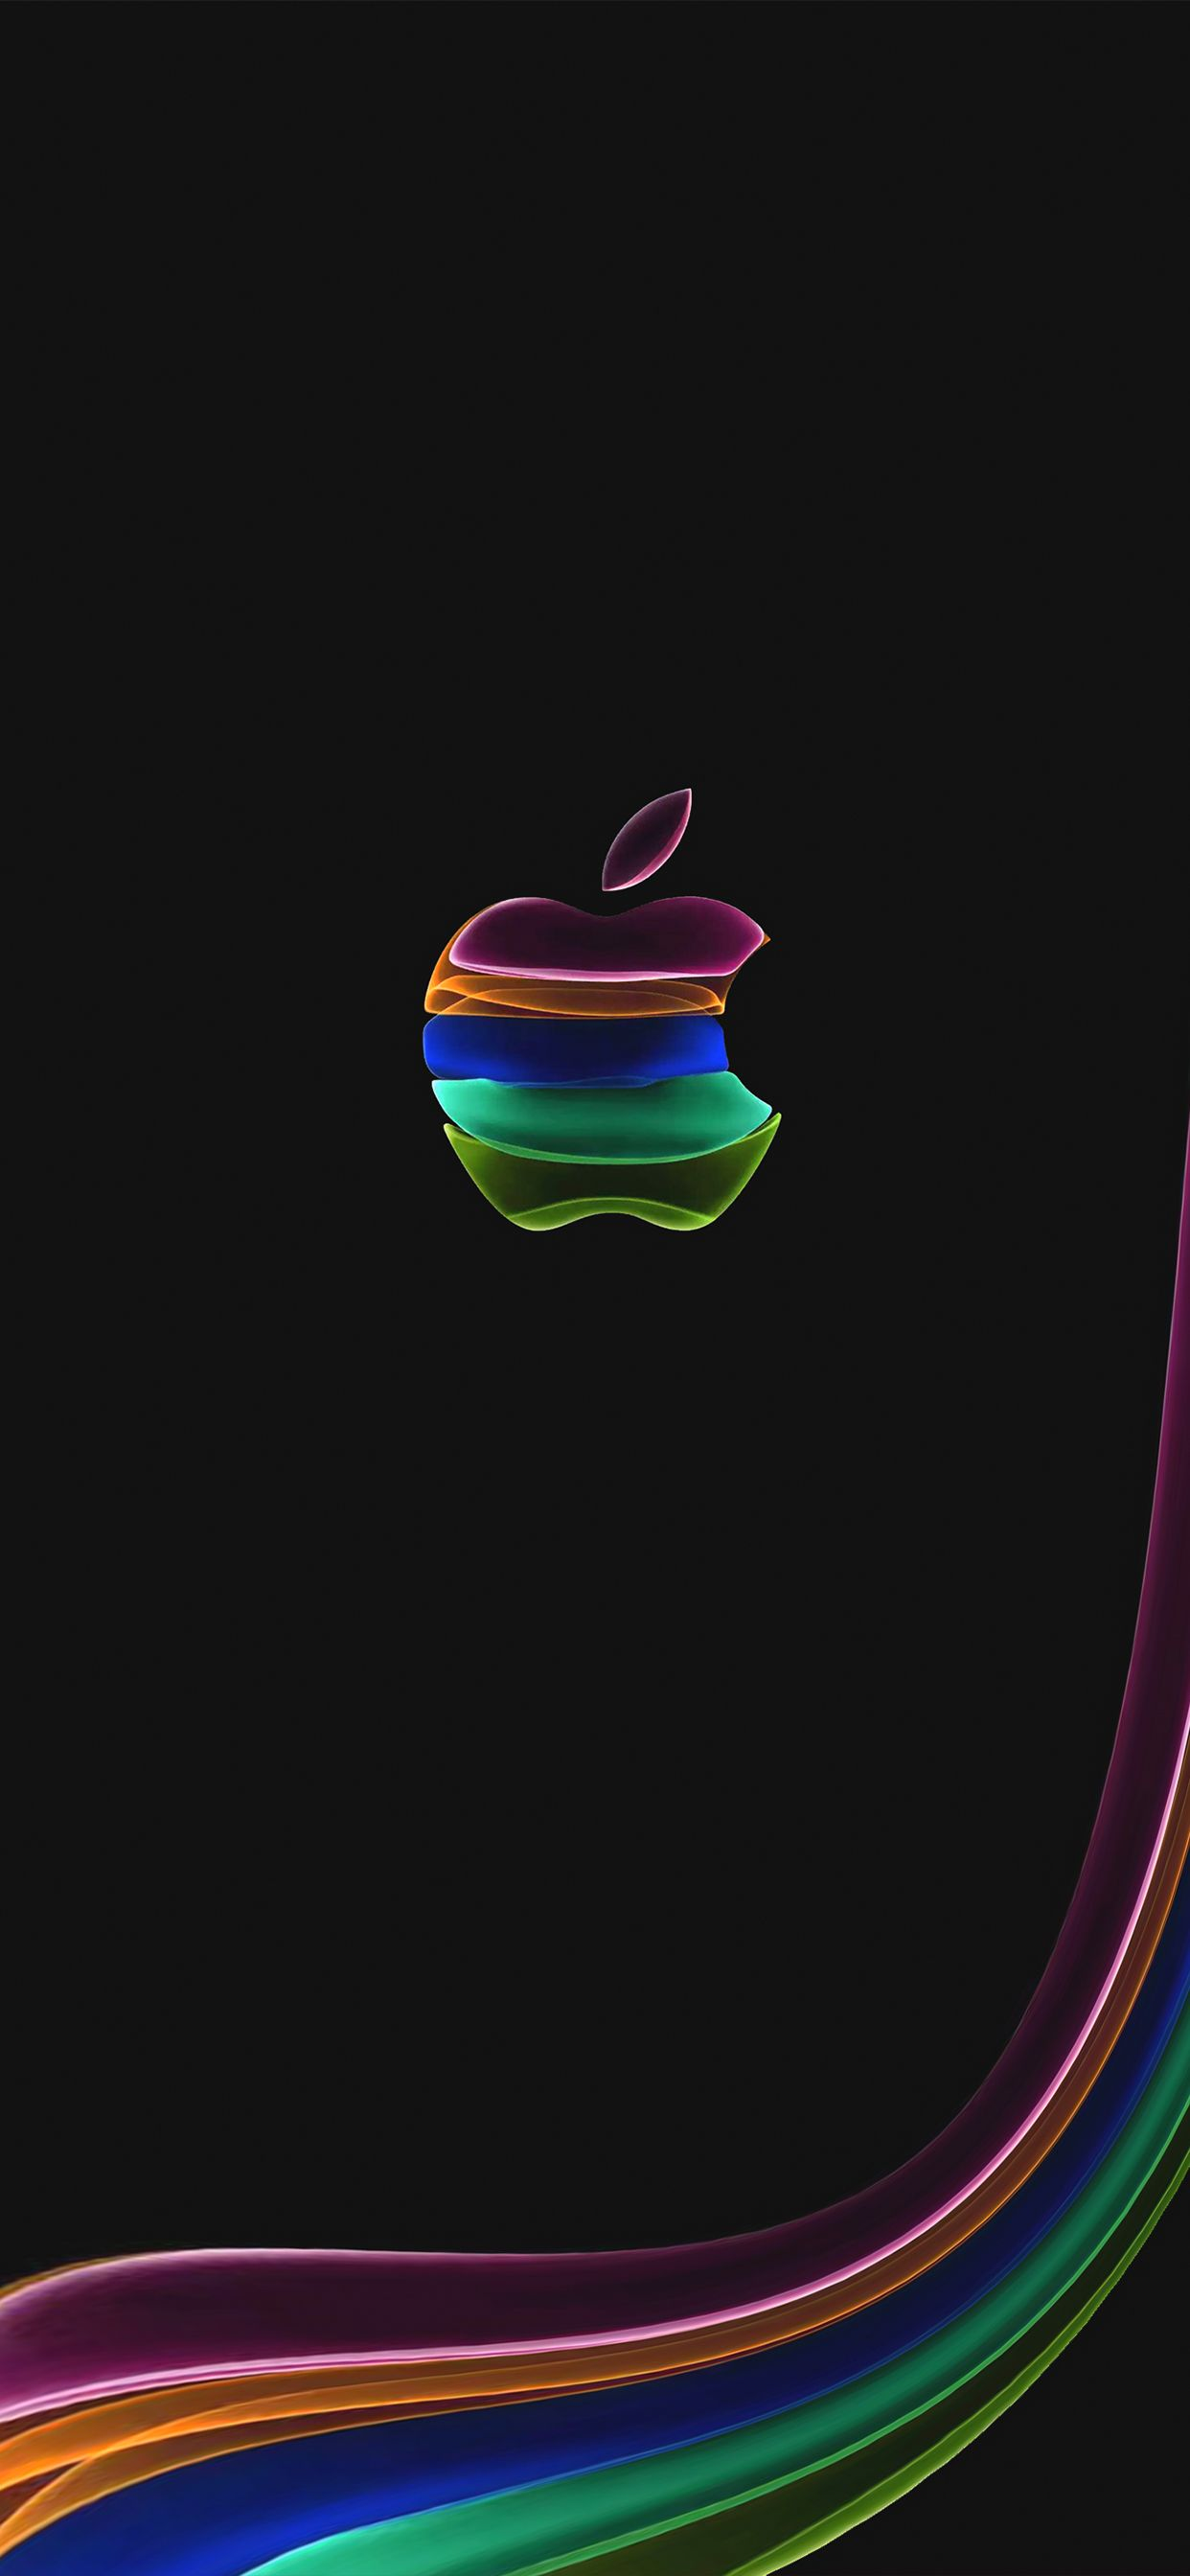 Pin by privaterayan on Sick wallpapers Apple logo